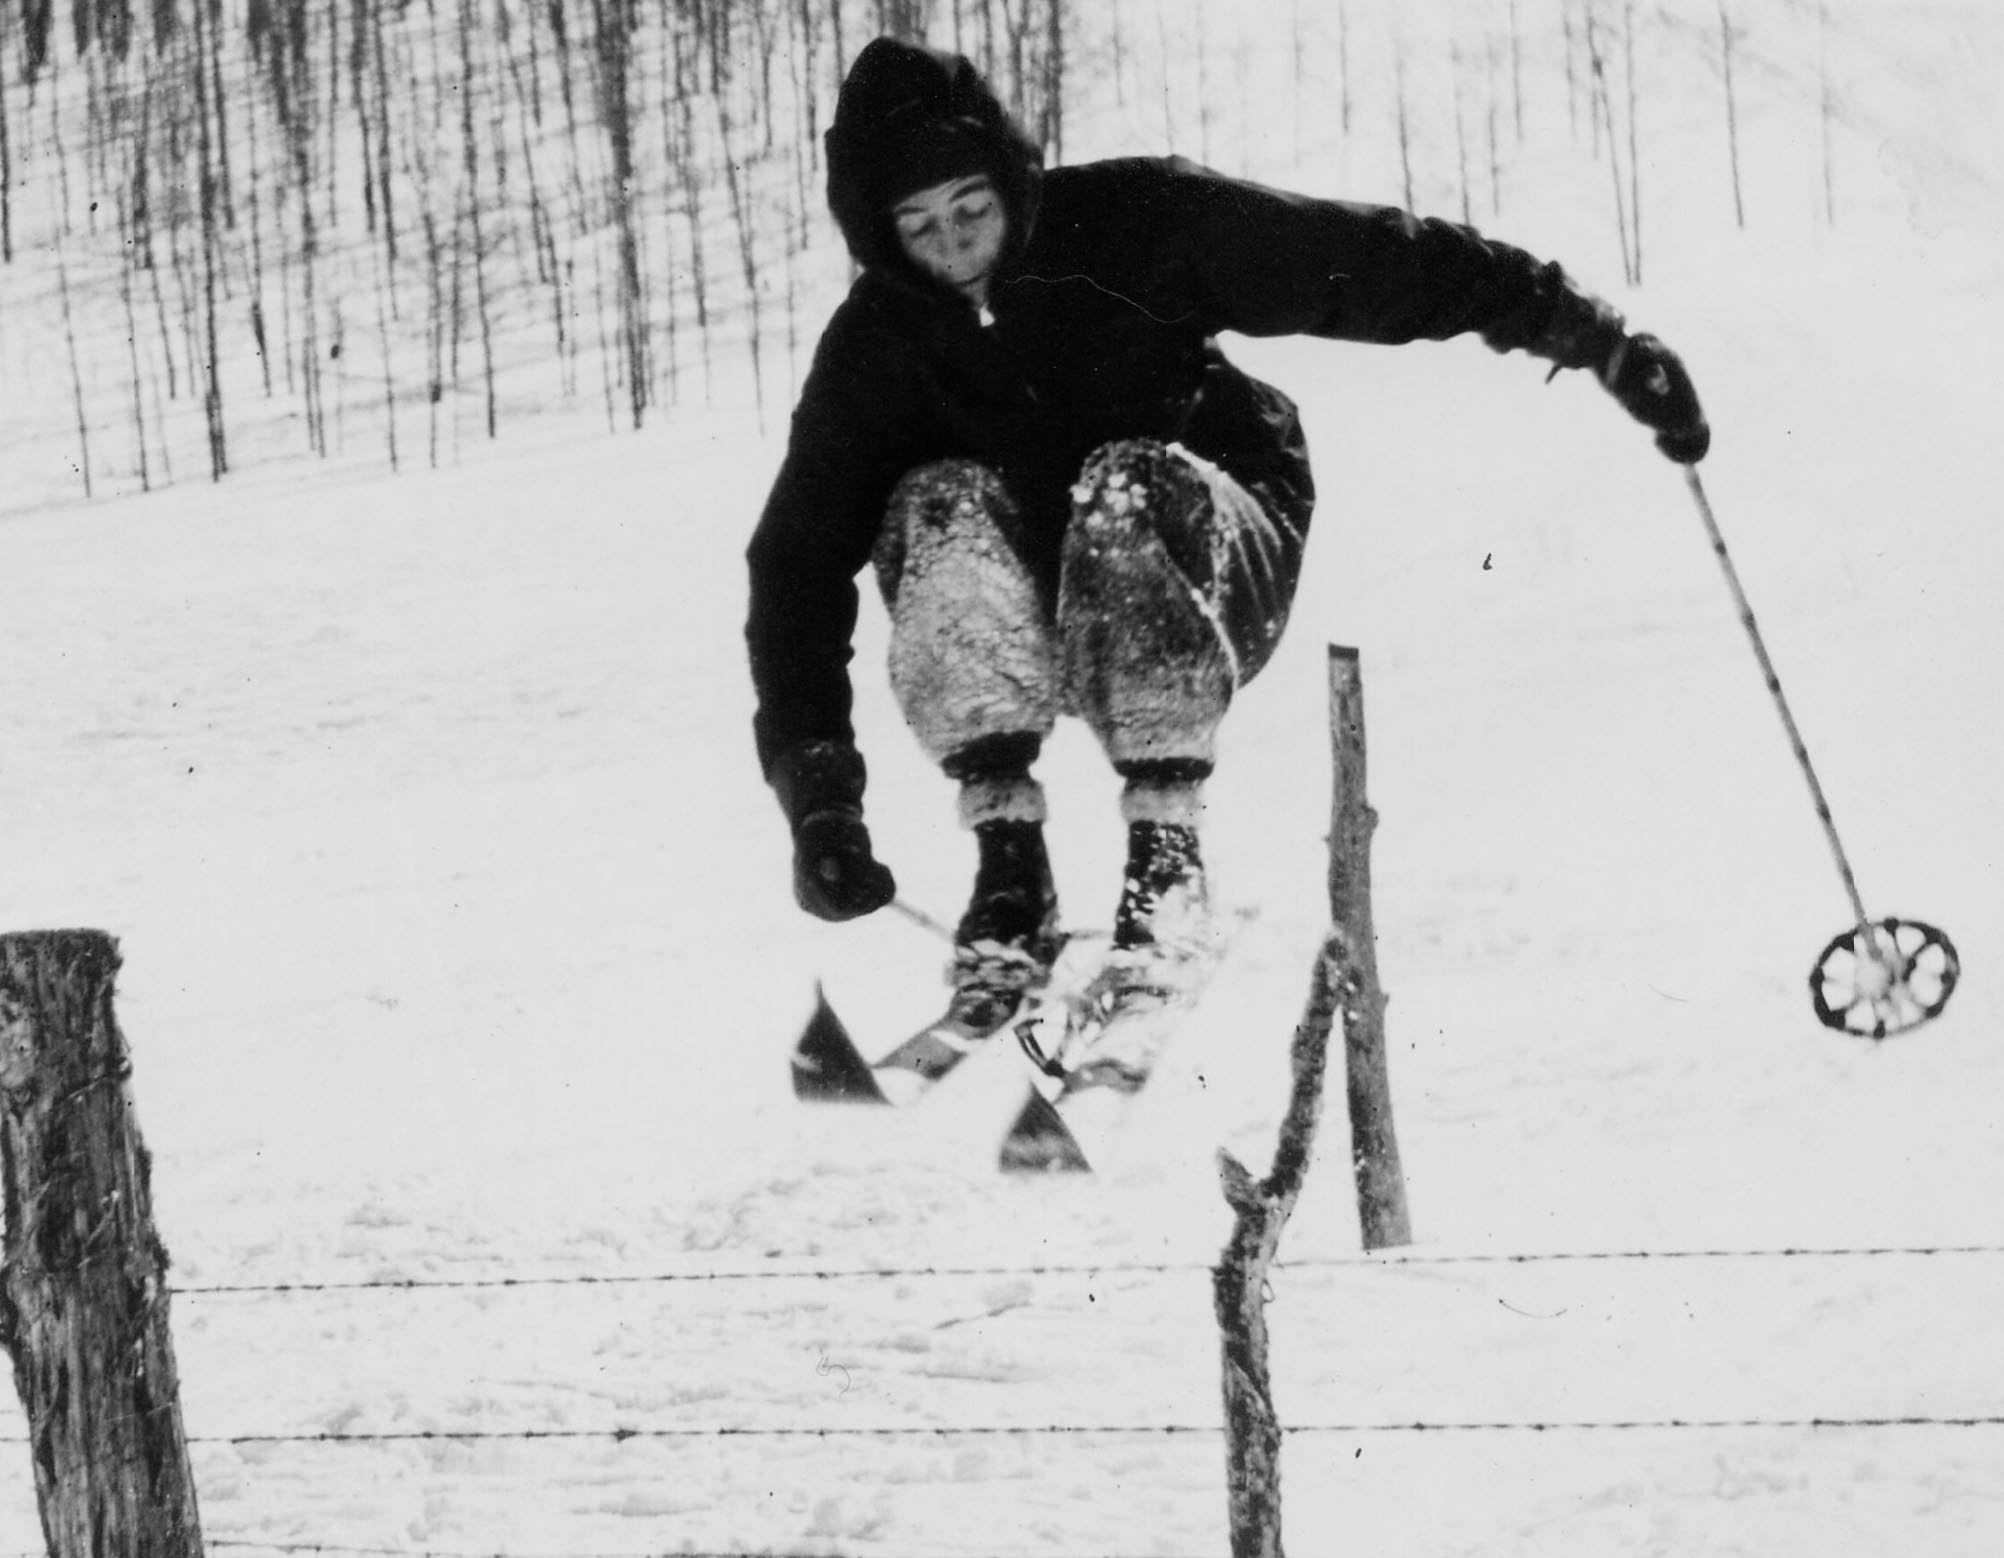 Photo: Lost Ski Areas book man jumping over fence Cropped